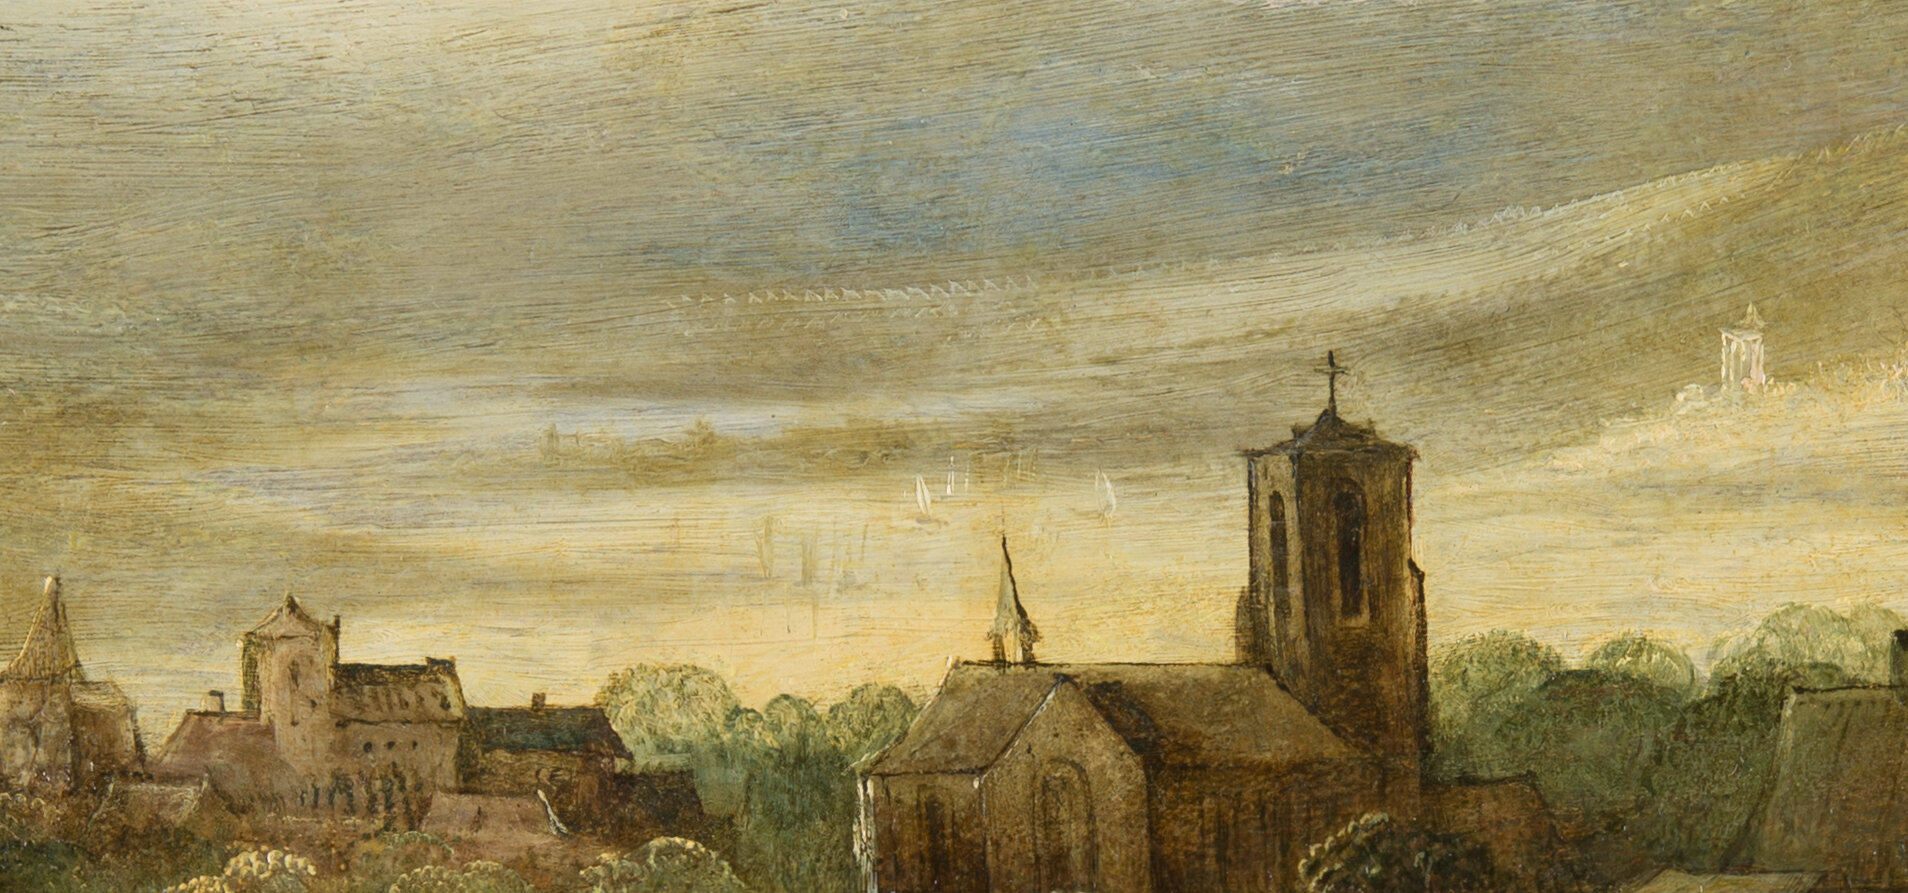 Detail of the landscape in the background behind the church after removal of the overpaint